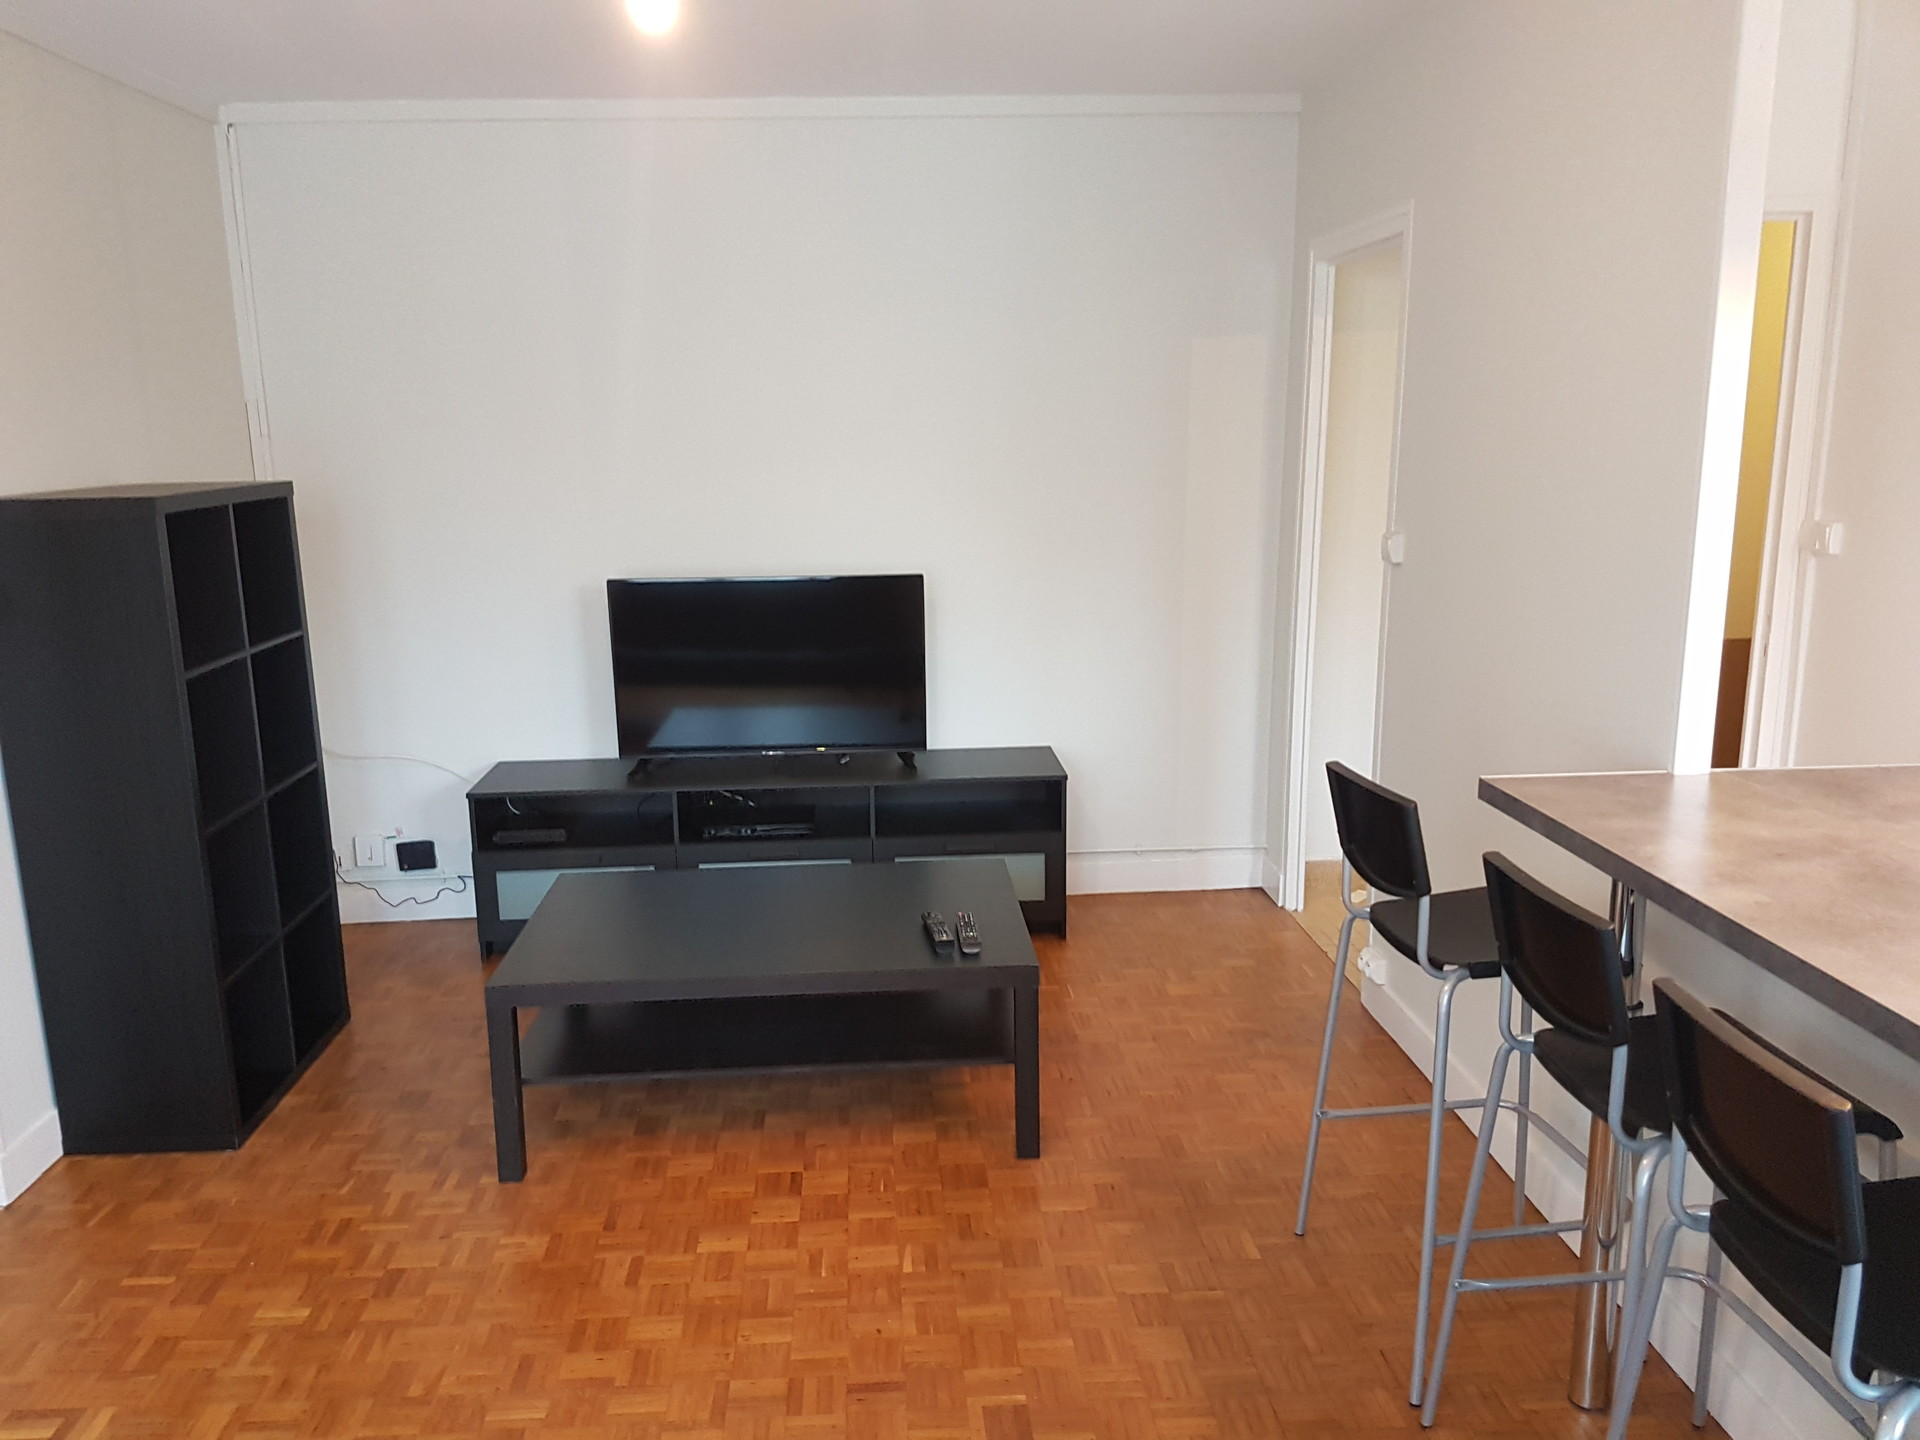 Meuble Four Plaque Induction sunny room with double bed, desk, big closet | room for rent